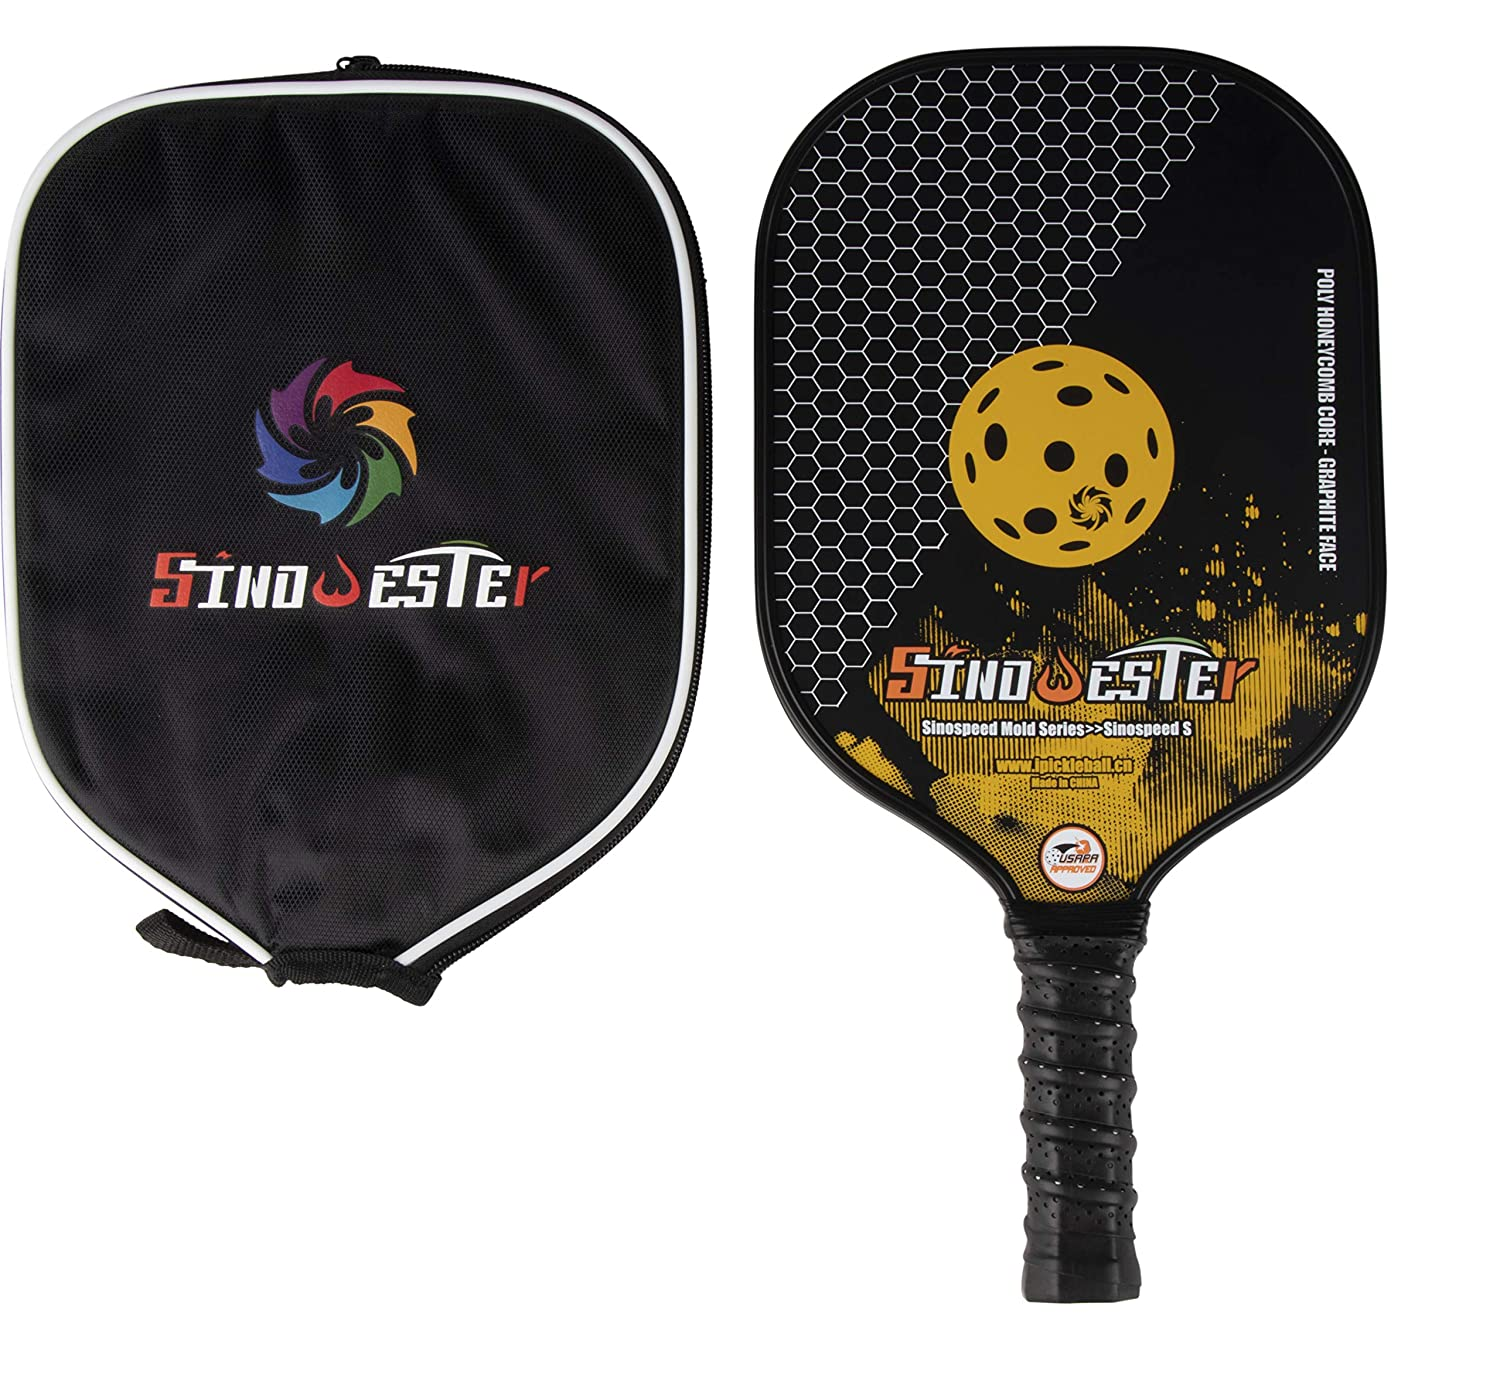 Amazon.com : Juvale Pickleball Paddle Racket with Cover, Graphite Faced, Polymer Honeycomb Core and Cushion Grip, 15.6 Inches : Sports & Outdoors